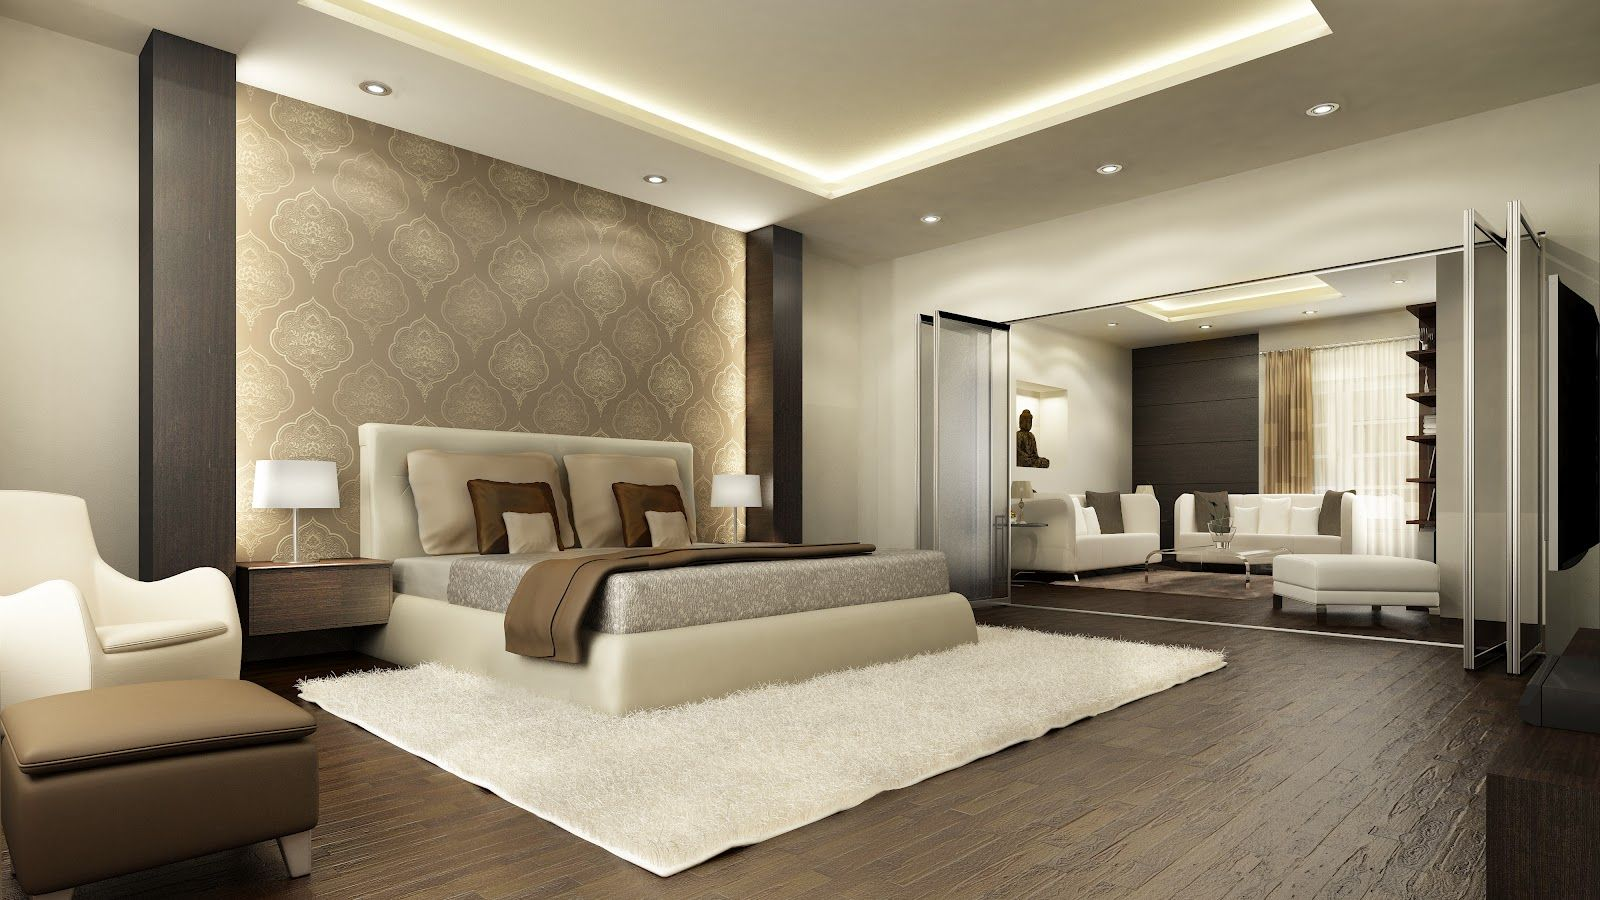 Bedroom Design Ideas With Bedroom Interior Design Bedroom